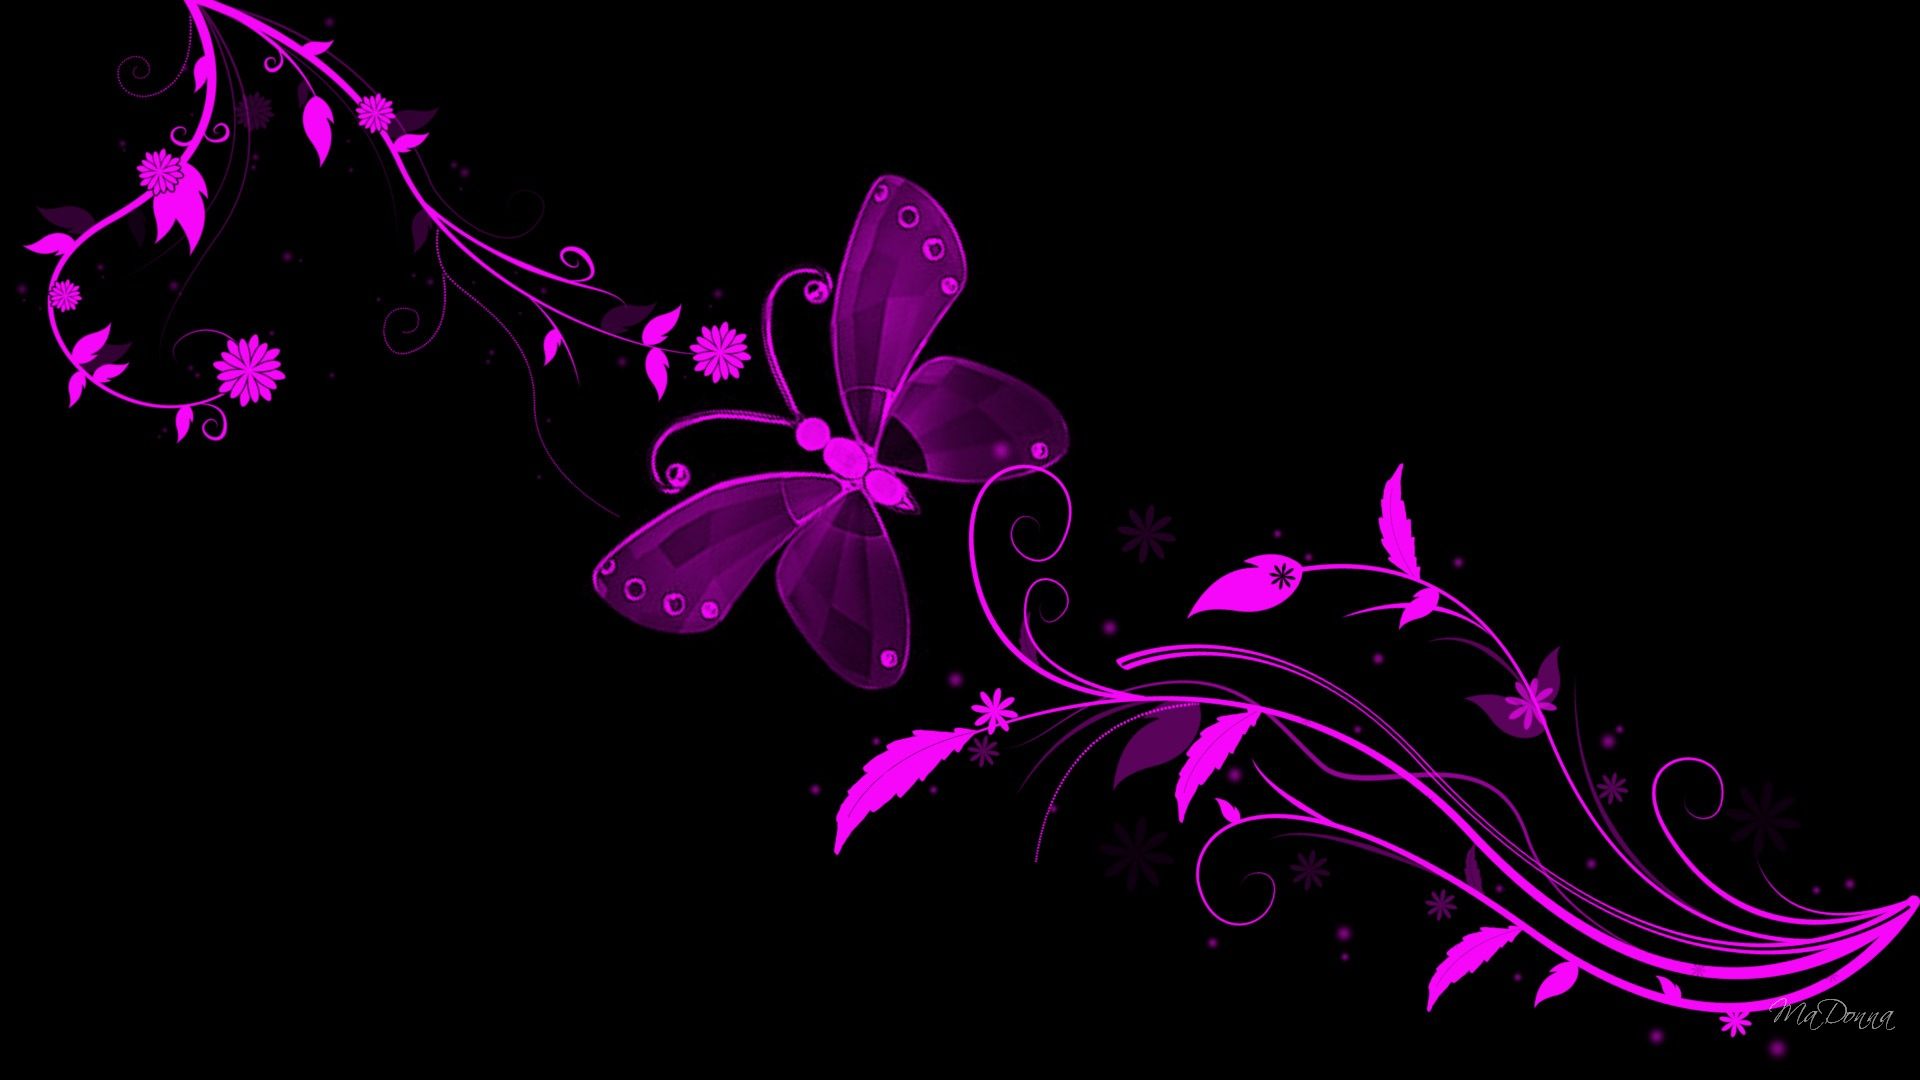 Abstract Flowers Backgrounds 6907 Hd Wallpapers in Flowers   Imagesci 1920x1080